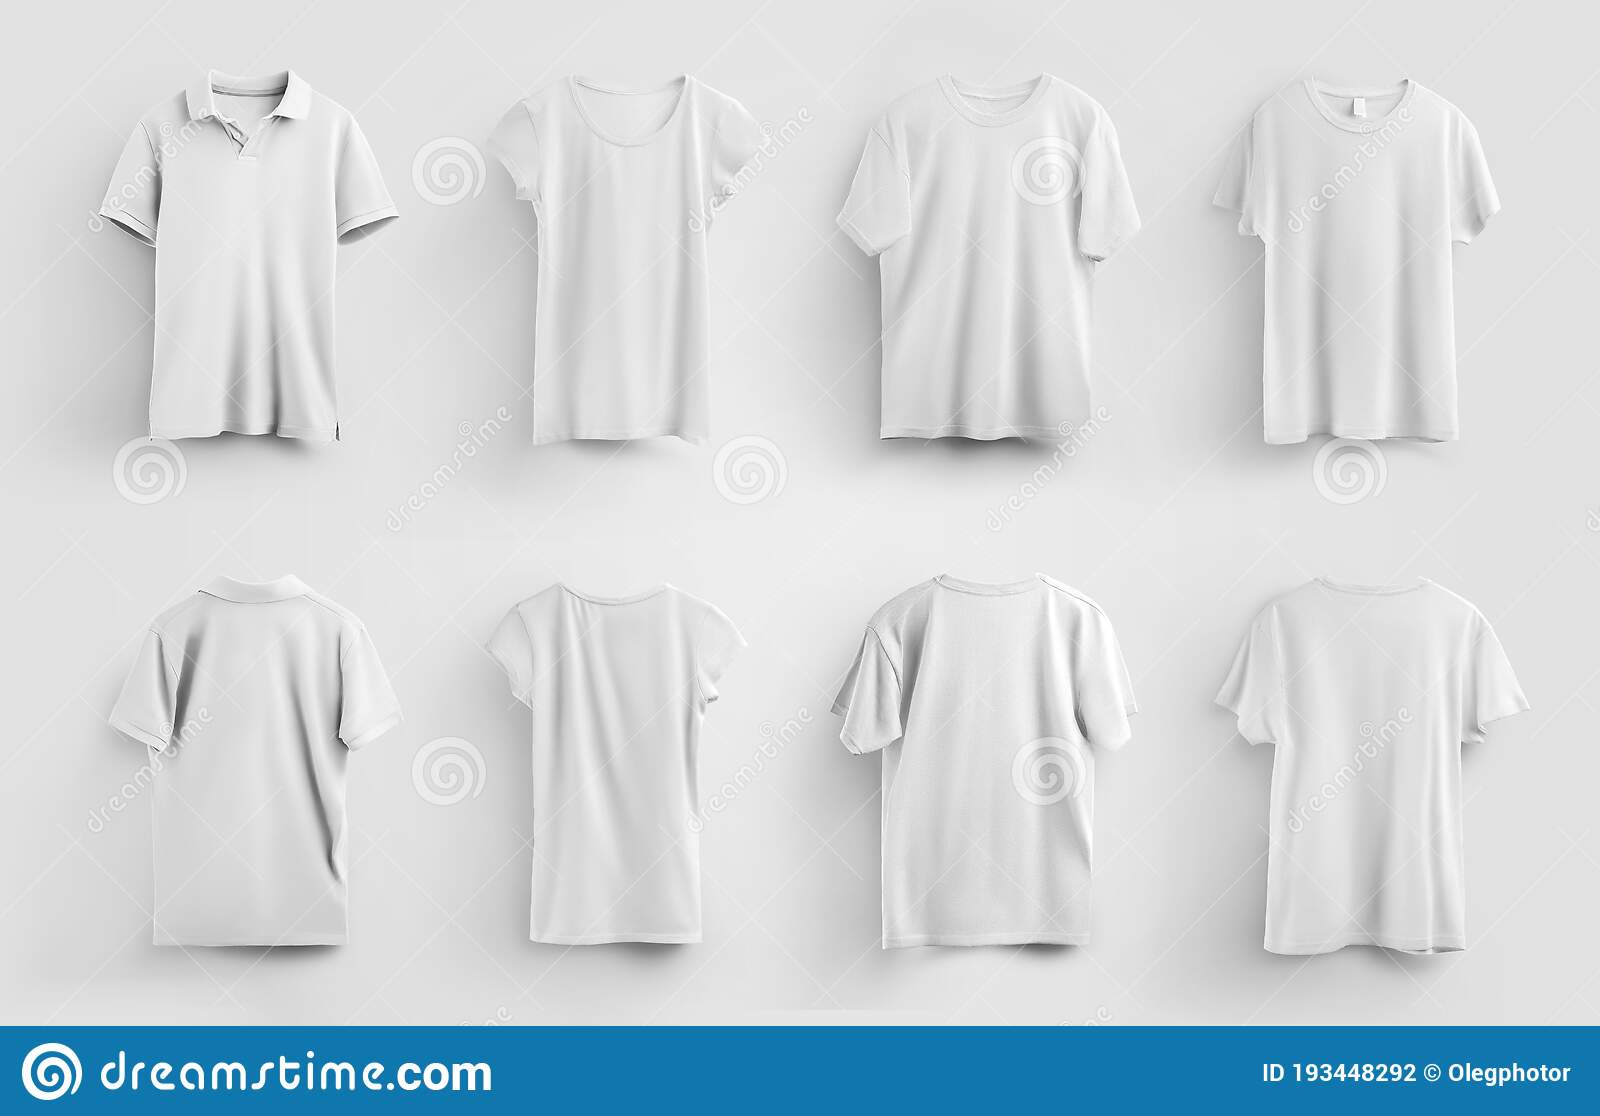 Set Of White Mens And Womens T-shirts And Polos Isolated On Background, For  Use In Advertising And Presentation Of Design, Pattern Stock Photo - Image  of presentation, closeup: 193448292